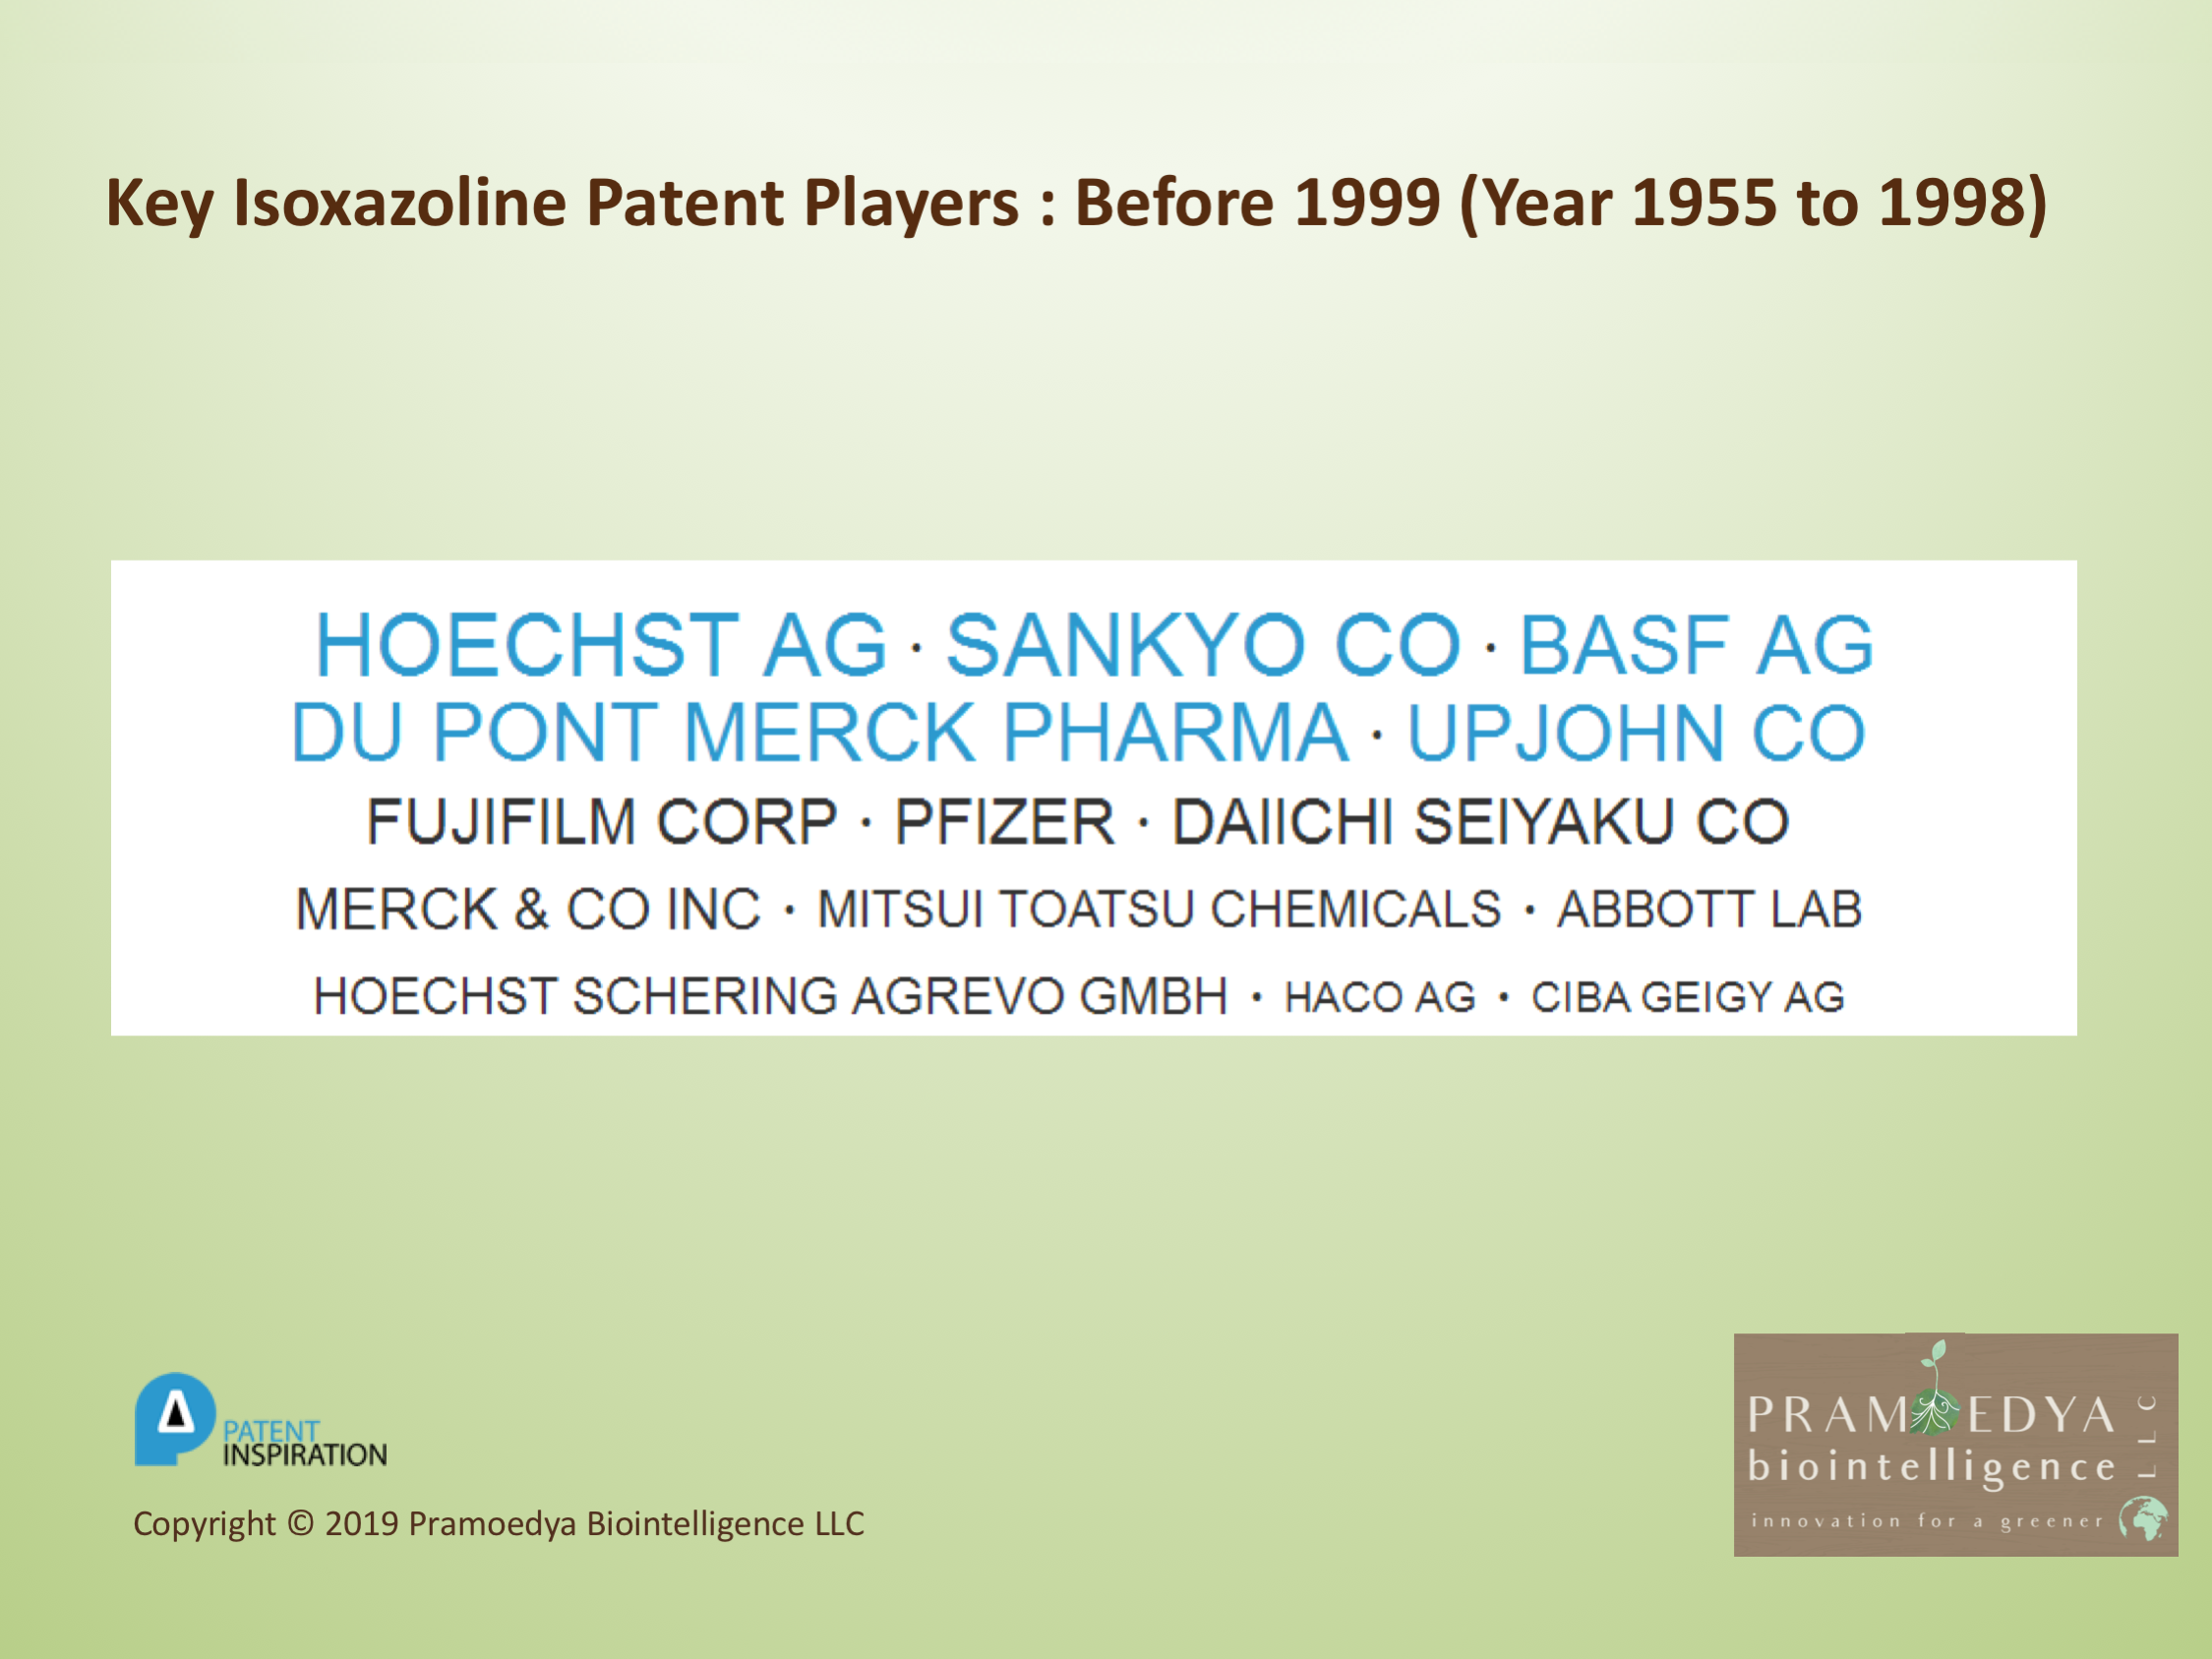 Before 1999  (Year 1955 to 1998)   Key Isoxazoline Patent Players before 1999  are also from  diverse industries , but interestingly, they  differ  from those of the last 20 years. Here, the key players include  agrochemical  (eg  Sankyo  and  BASF ) and  pharmaceutical  (eg  Du Pont Merck Pharma  and  Pfizer ) companies. Even though these patent publications have expired validities, for technology landscape purposes, they are valuable resources with potentials for further isoxazoline innovation opportunities and insights.